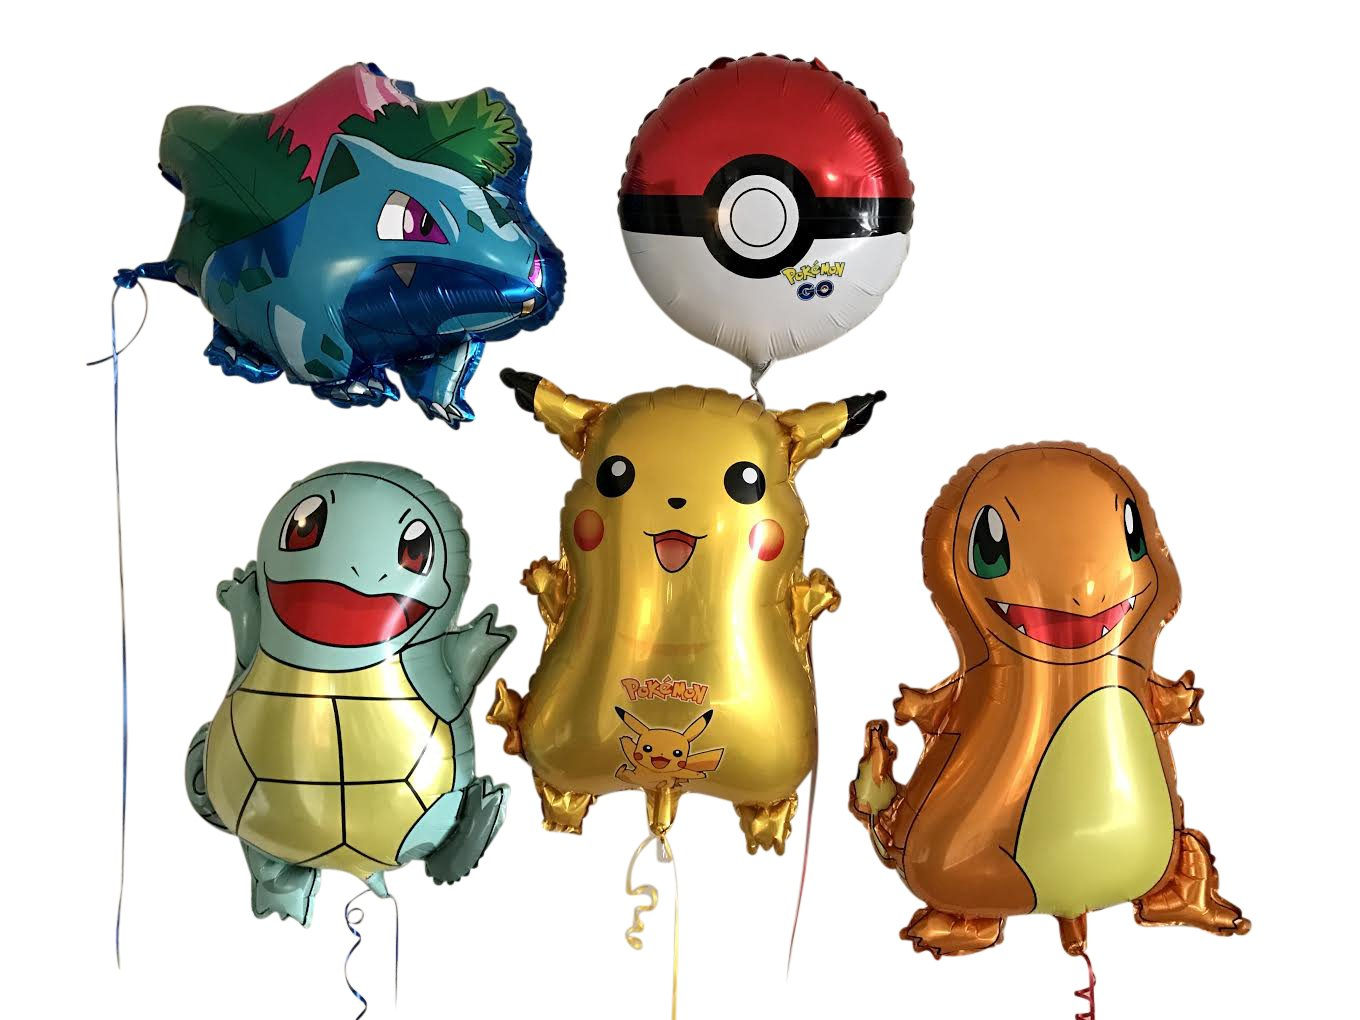 Pokemon Large, Pikachu & Friends Children's Birthday Party Balloons, 5-Pack over-2-feet-tall (26